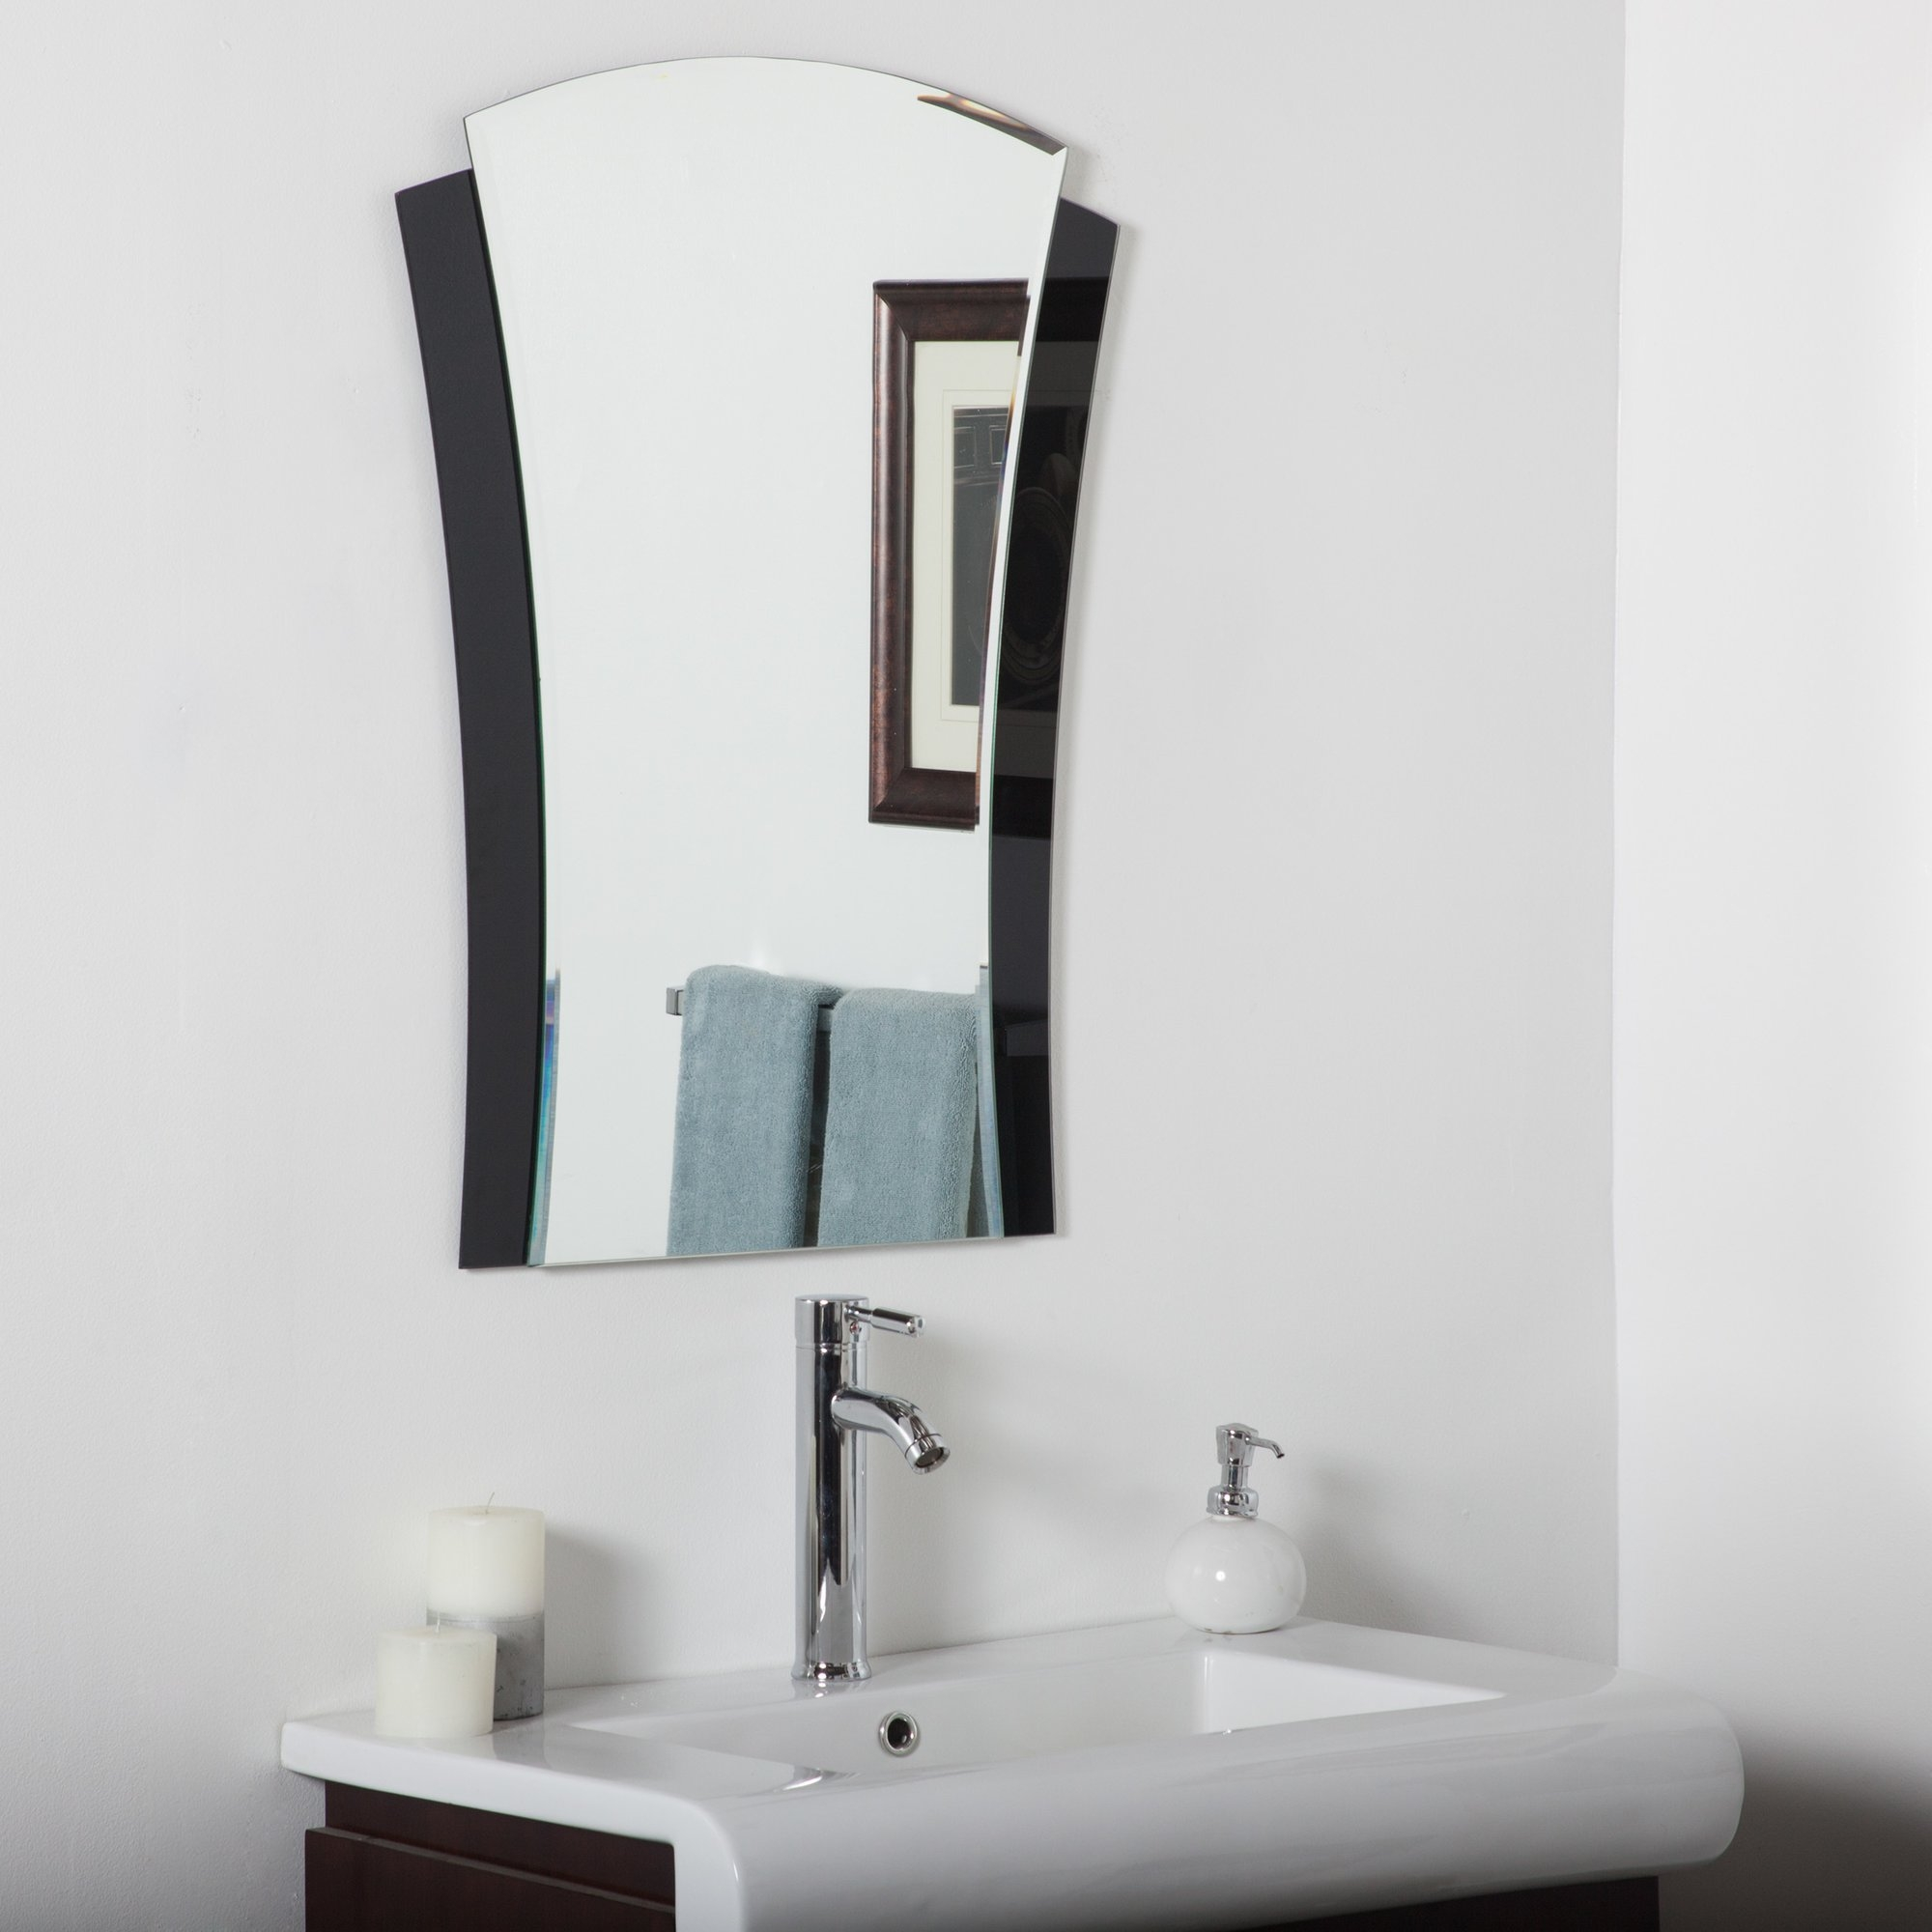 Decor Wonderland Deco Wall Mirror Reviews Wayfair In Deco Bathroom Mirror (Image 12 of 15)